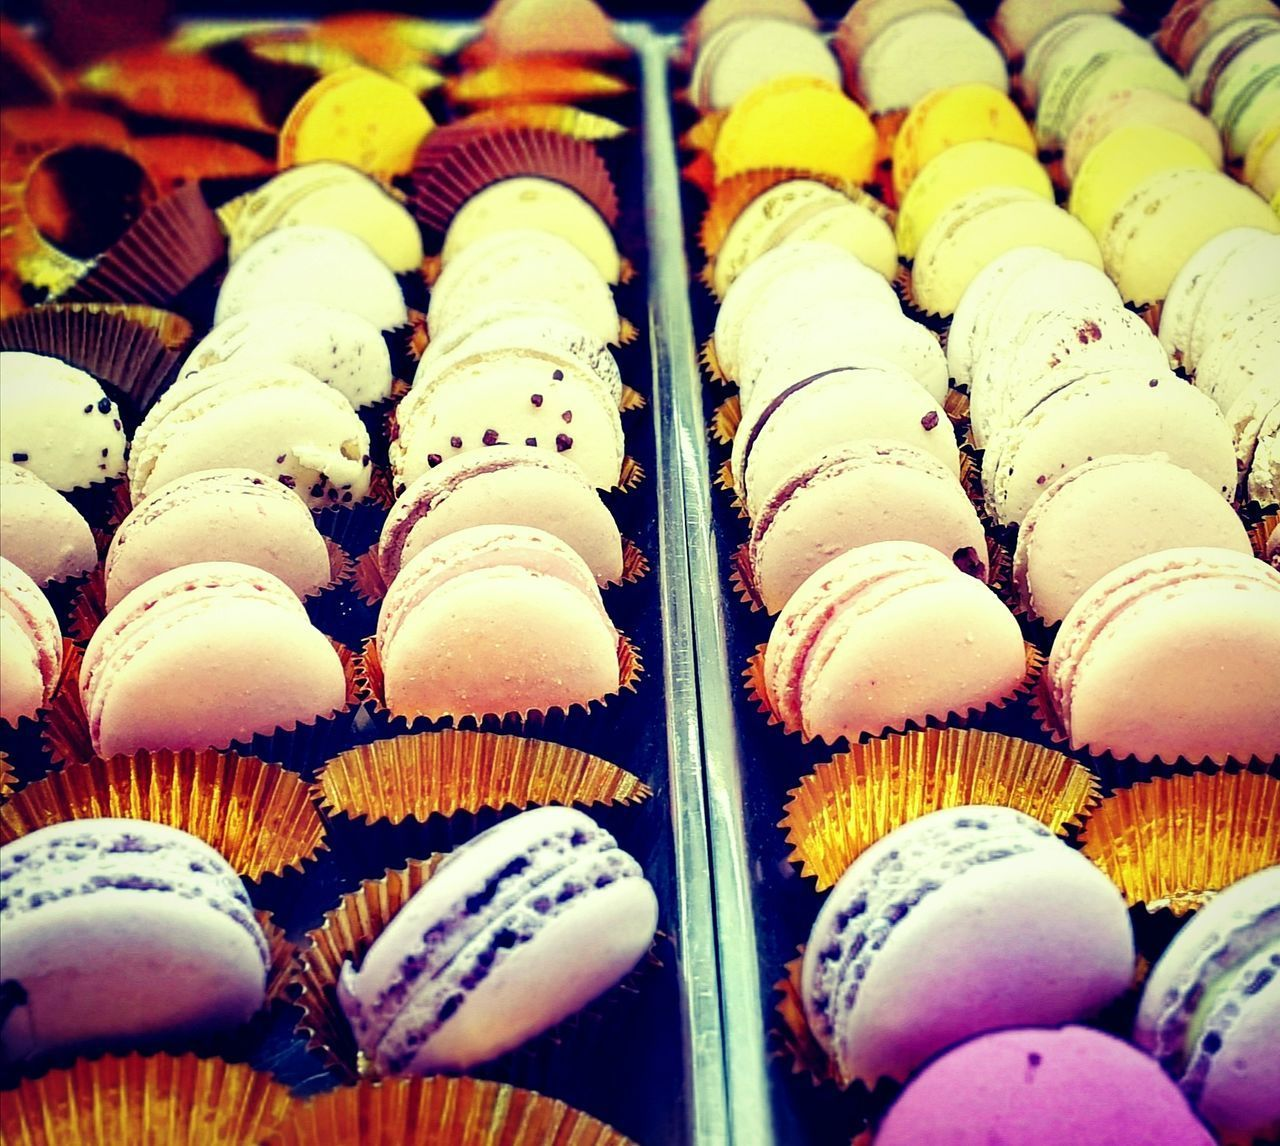 FULL FRAME SHOT OF CUPCAKES IN SHOP